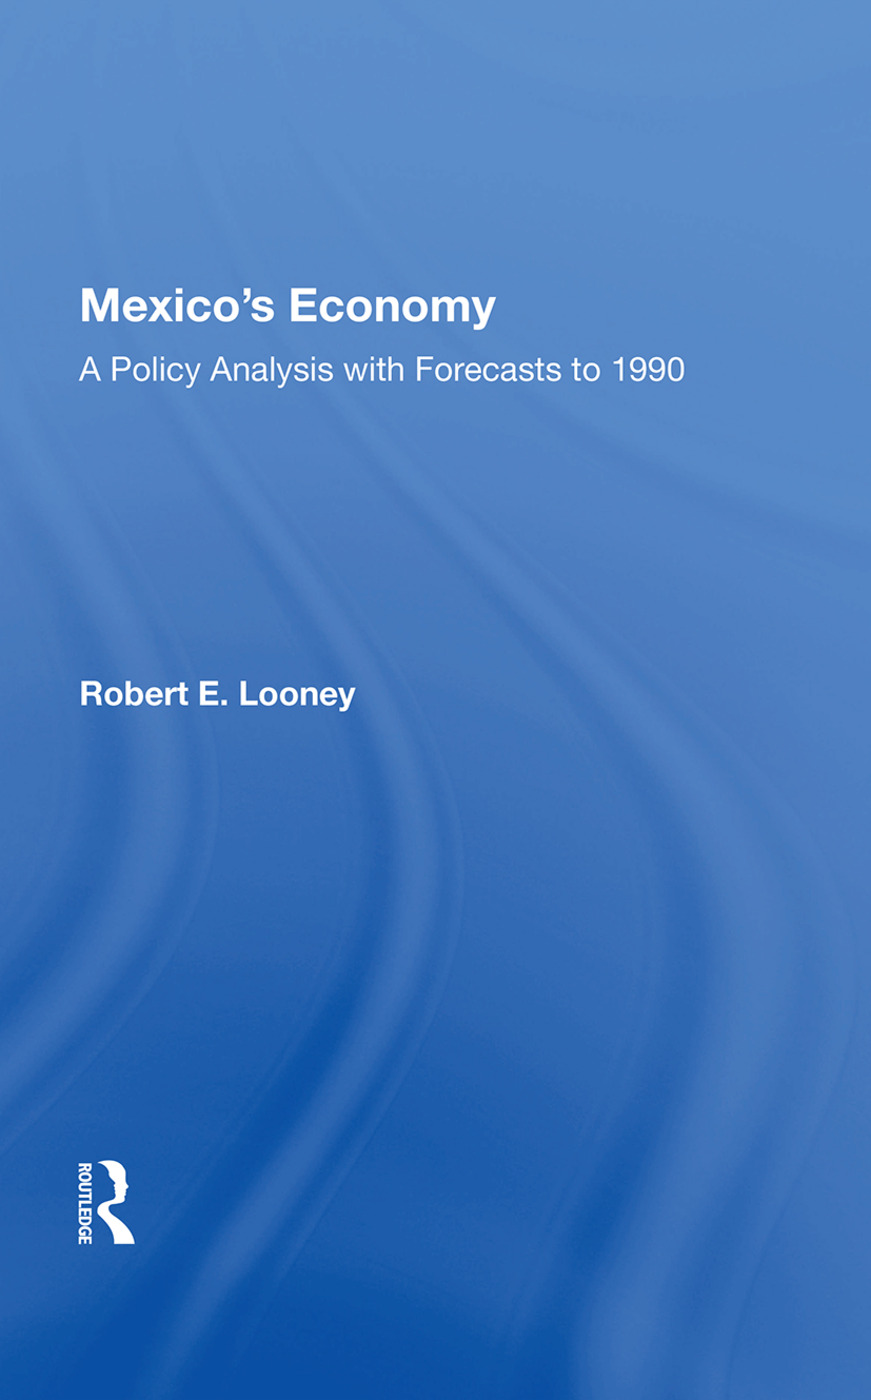 Mexico's Economy: A Policy Analysis With Forecasts To 1990 book cover